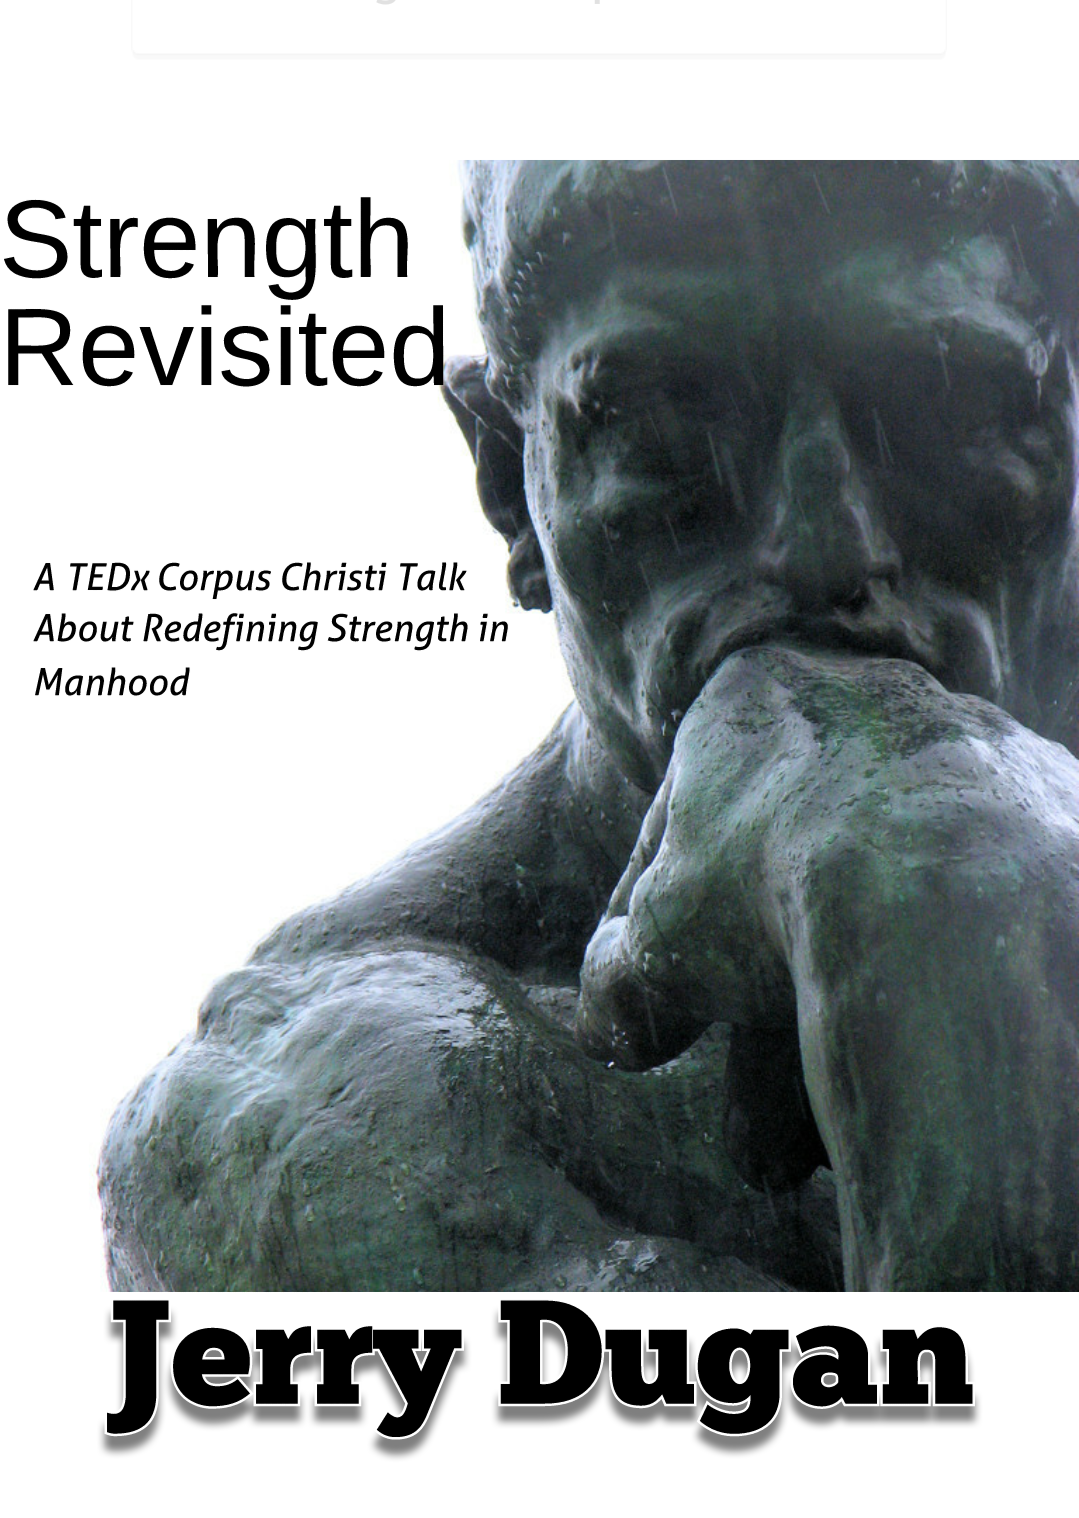 Strength Revisited, Download this FREEBIE